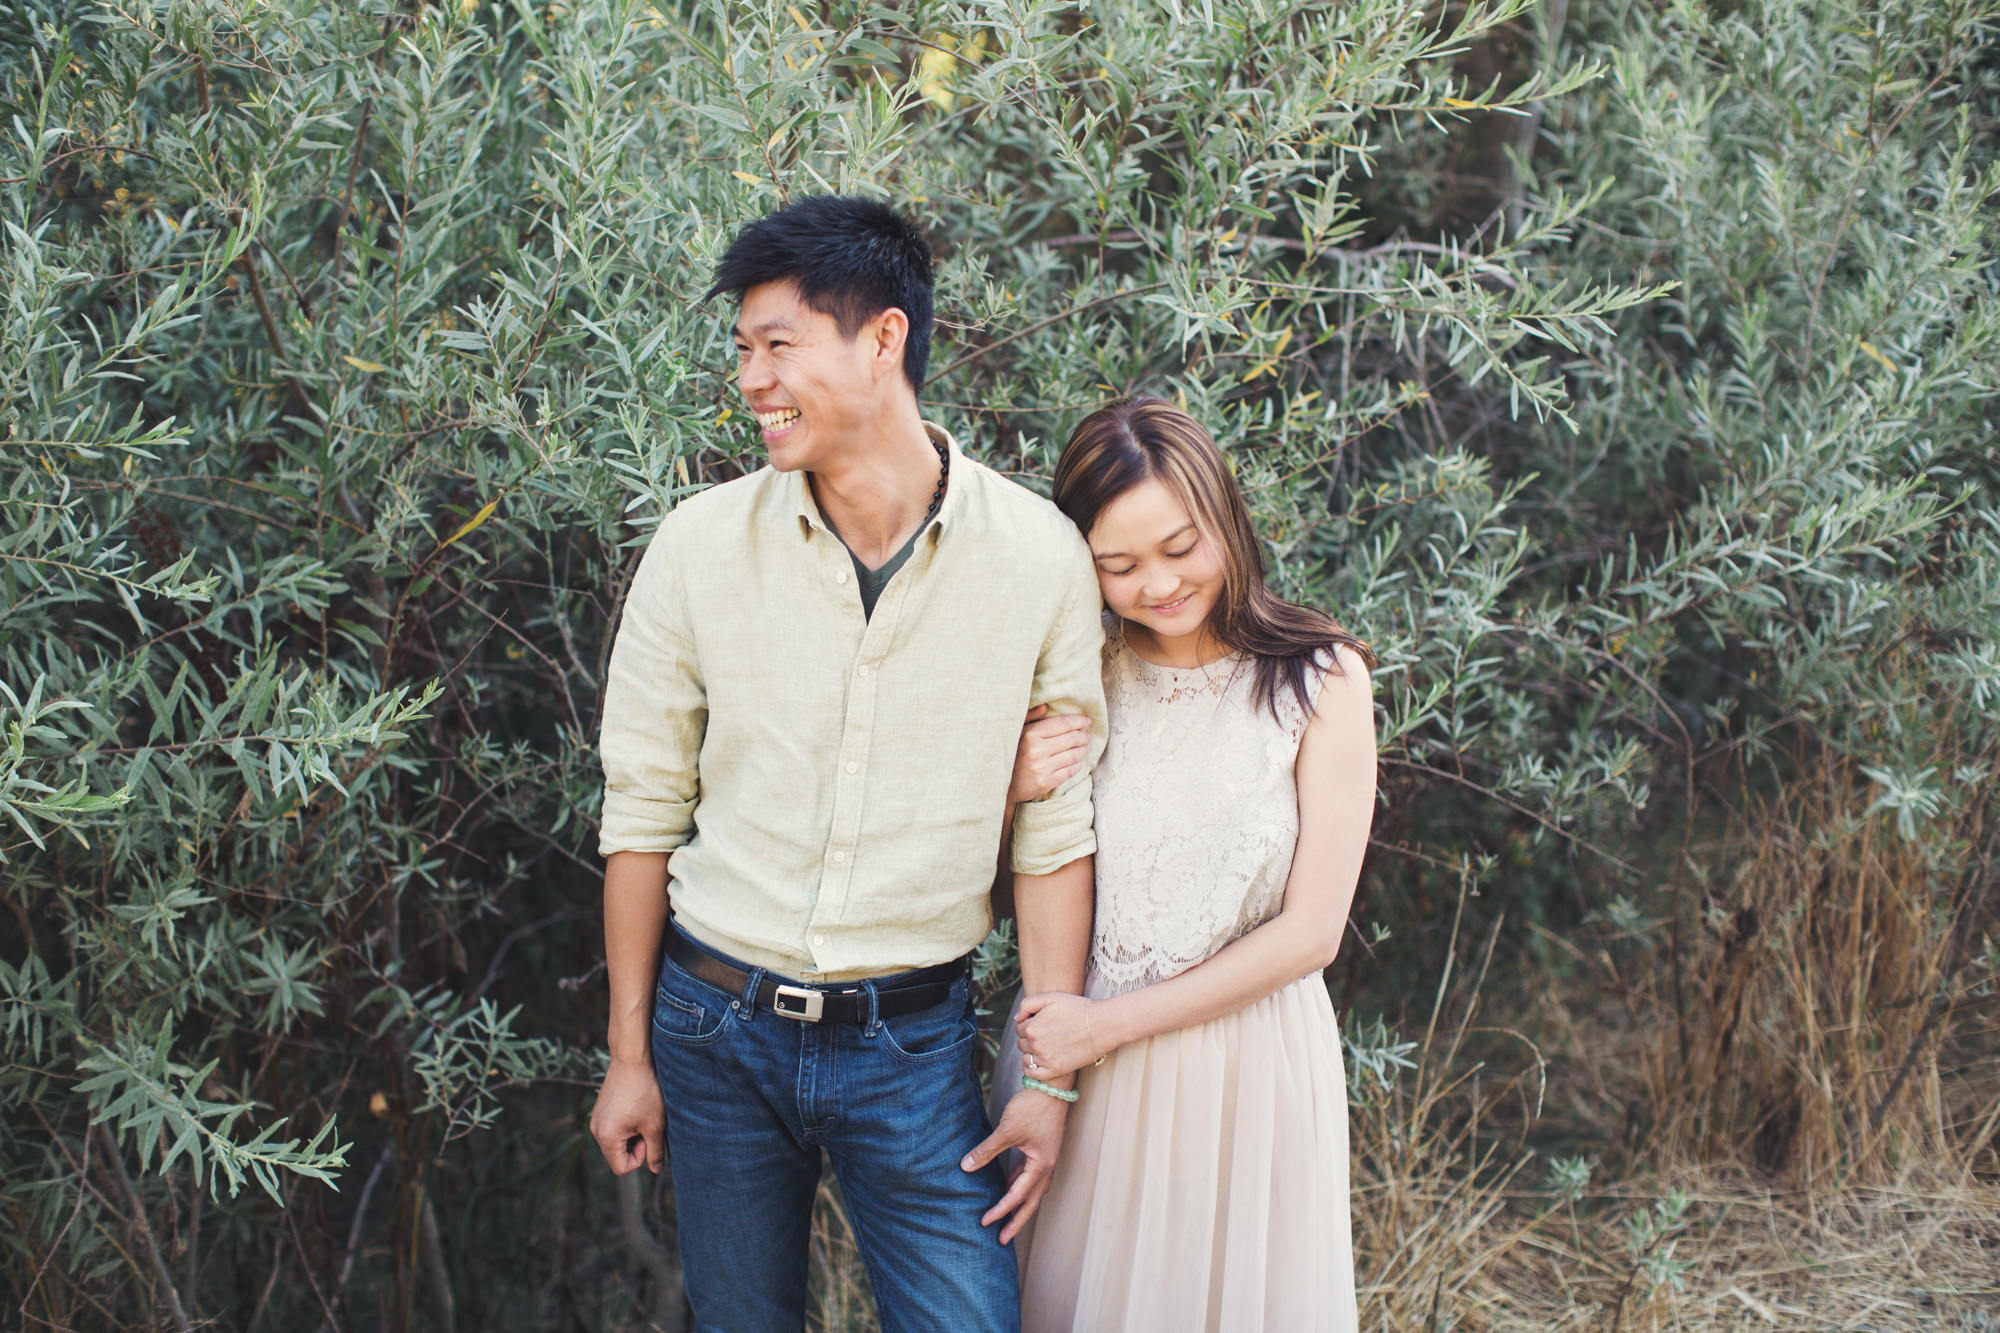 engagement session in Guerneville©Anne-Claire Brun 0027